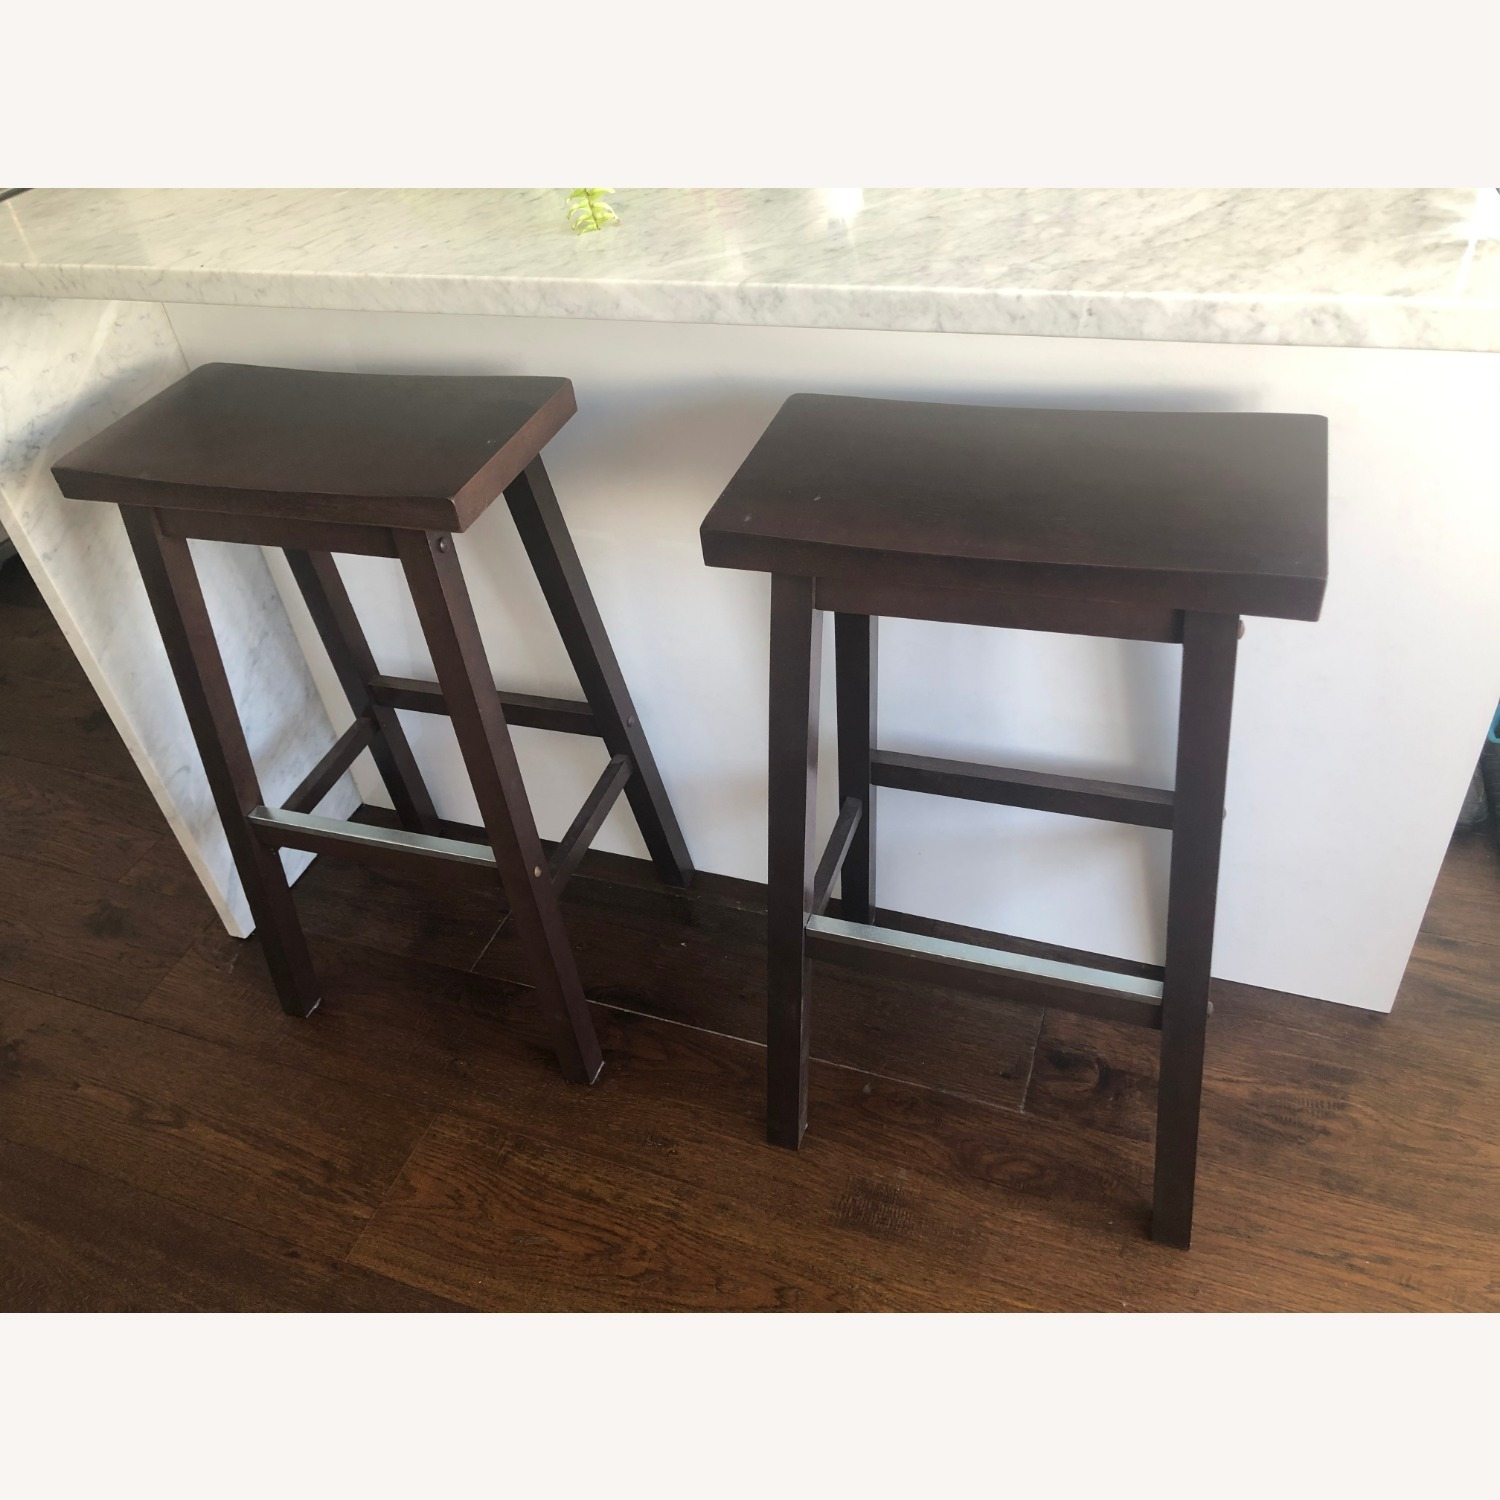 Walnut Kitchen Counter Stool with Foot Plate - image-1